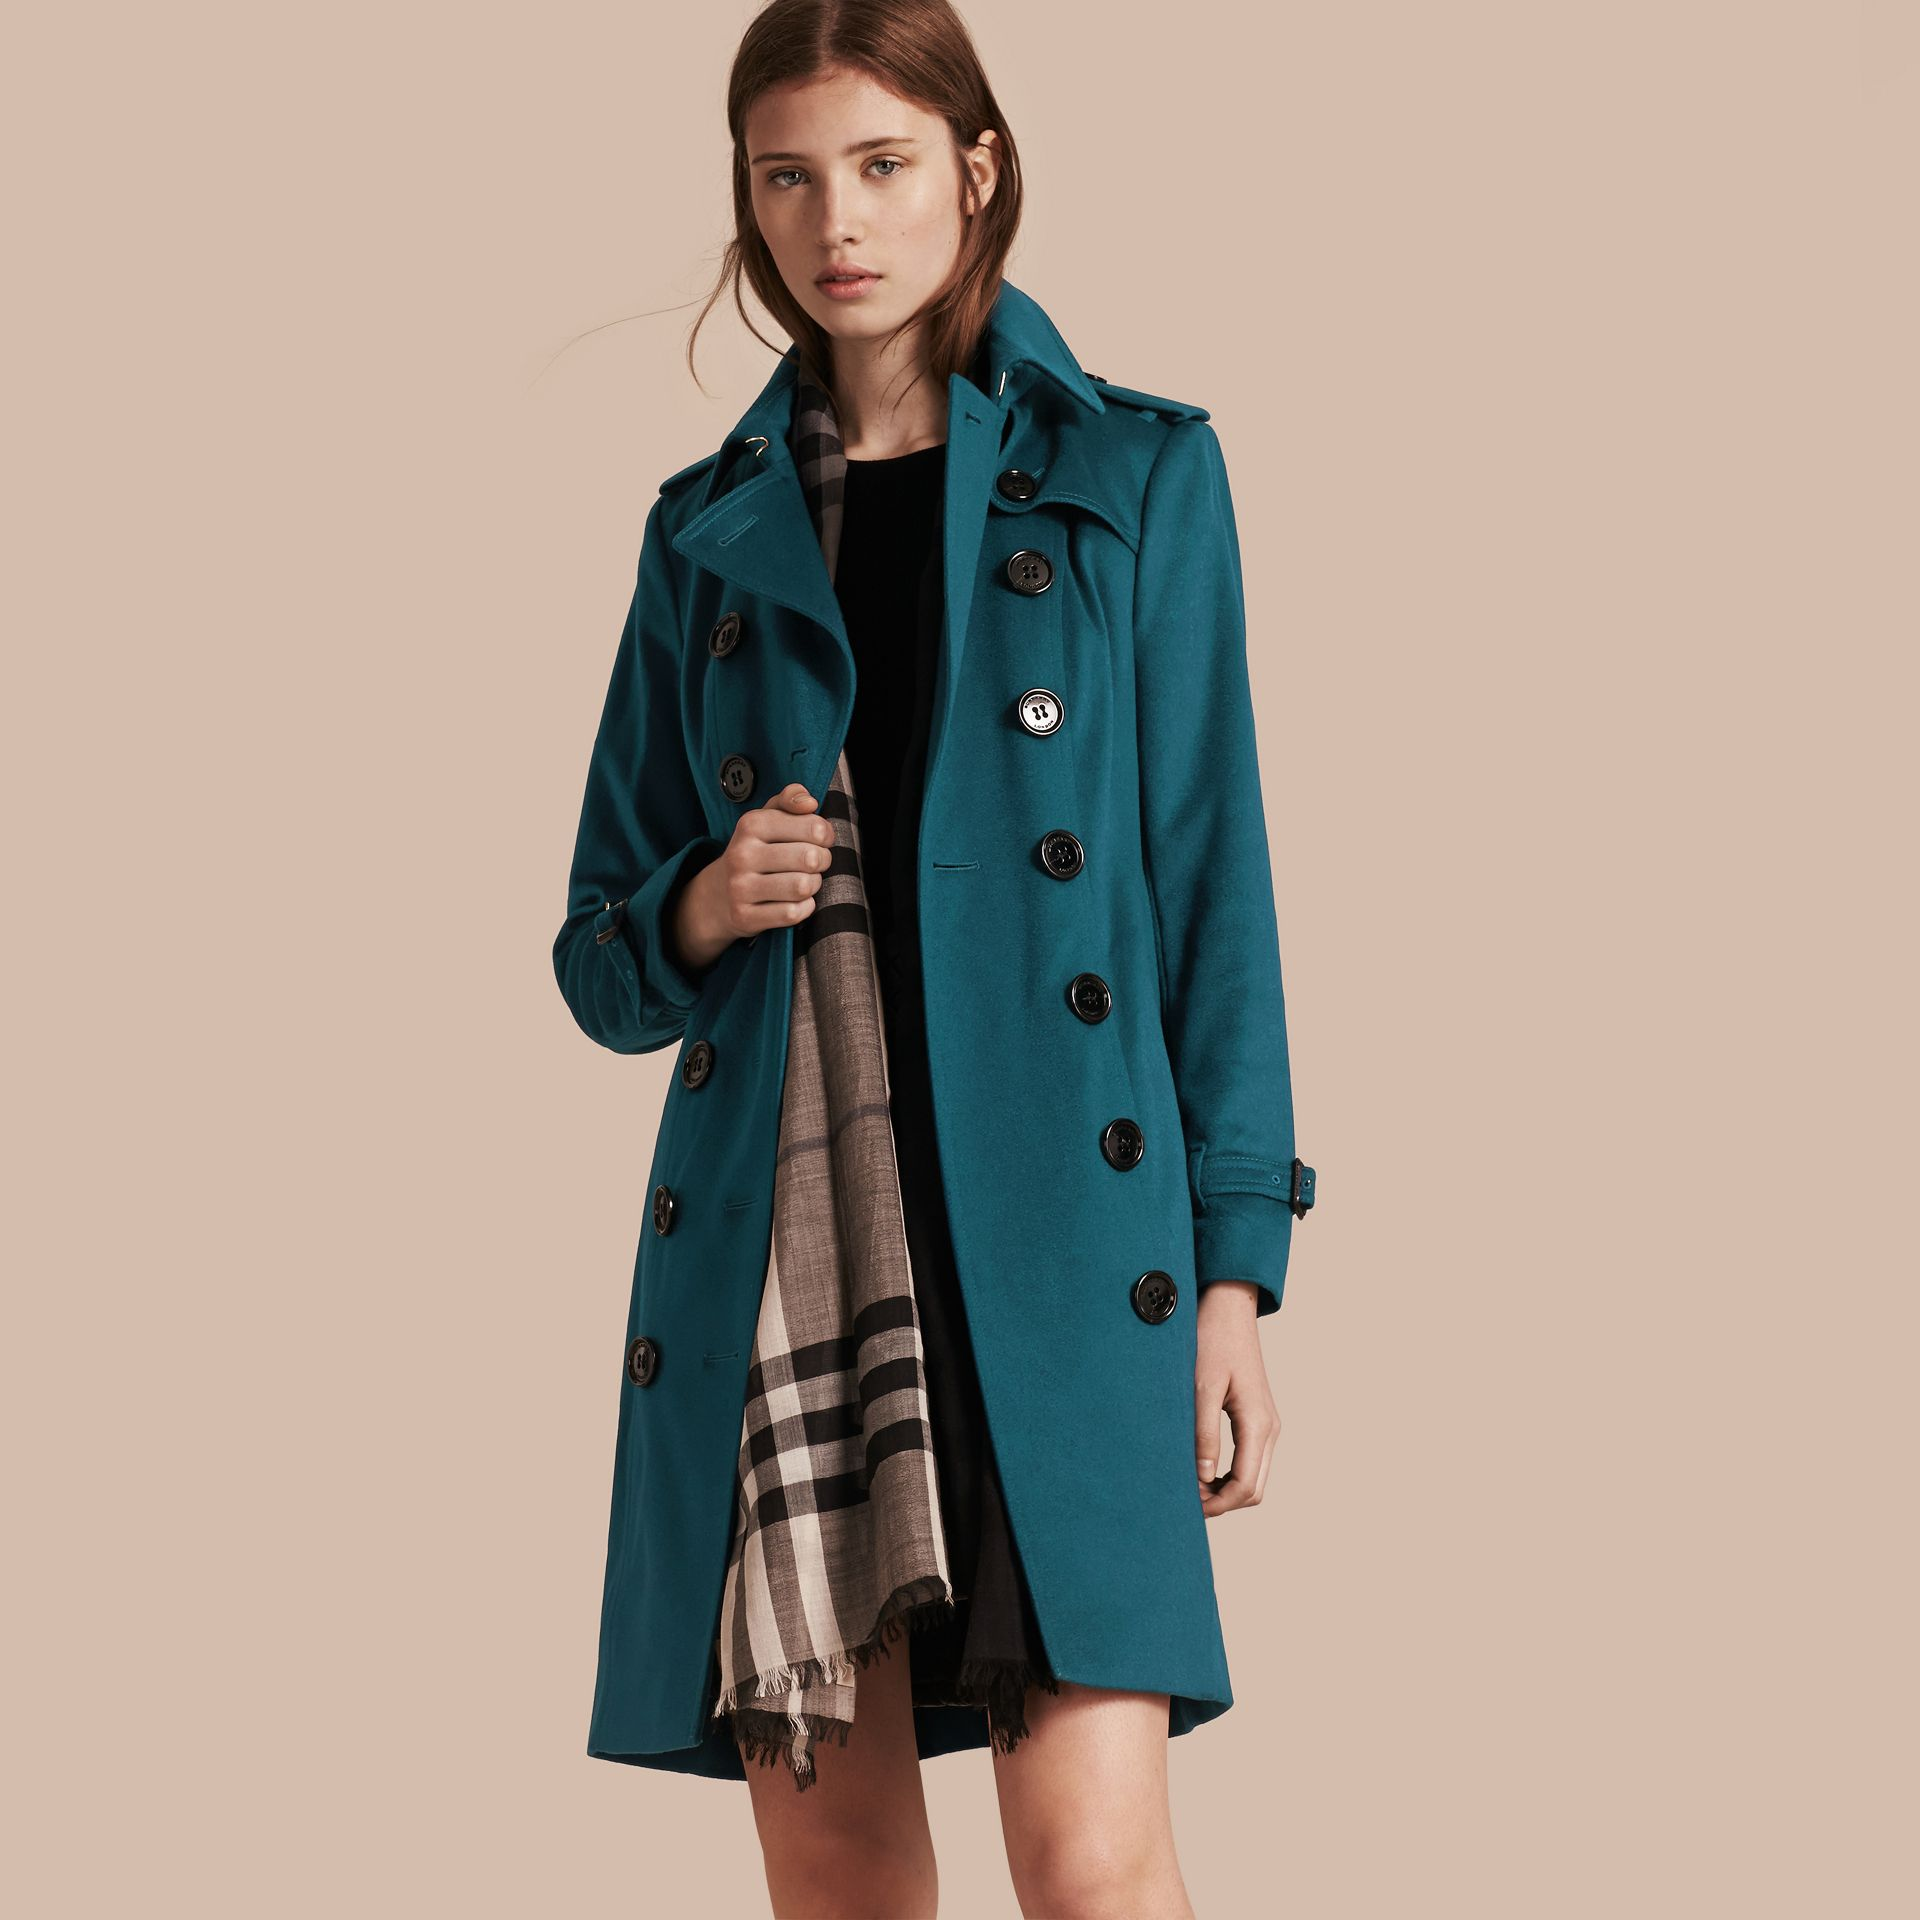 Teal Sandringham Fit Cashmere Trench Coat Teal - gallery image 1